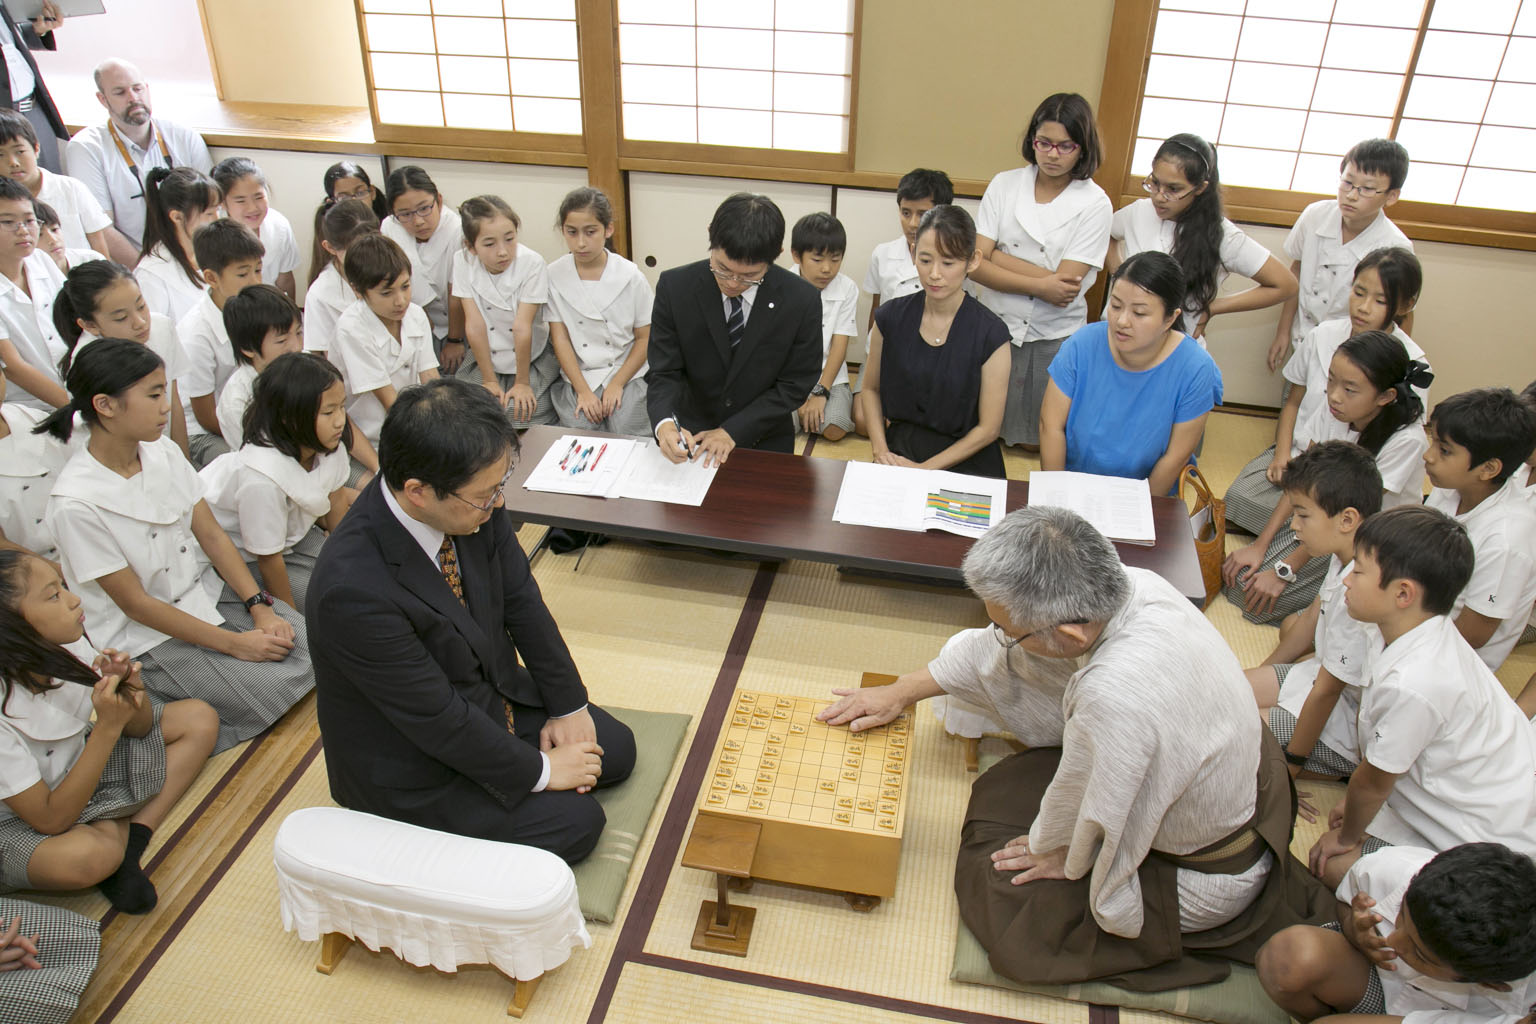 Students sitting in the formal seiza style learn shogi from professionals in Tokyo. | KYODO